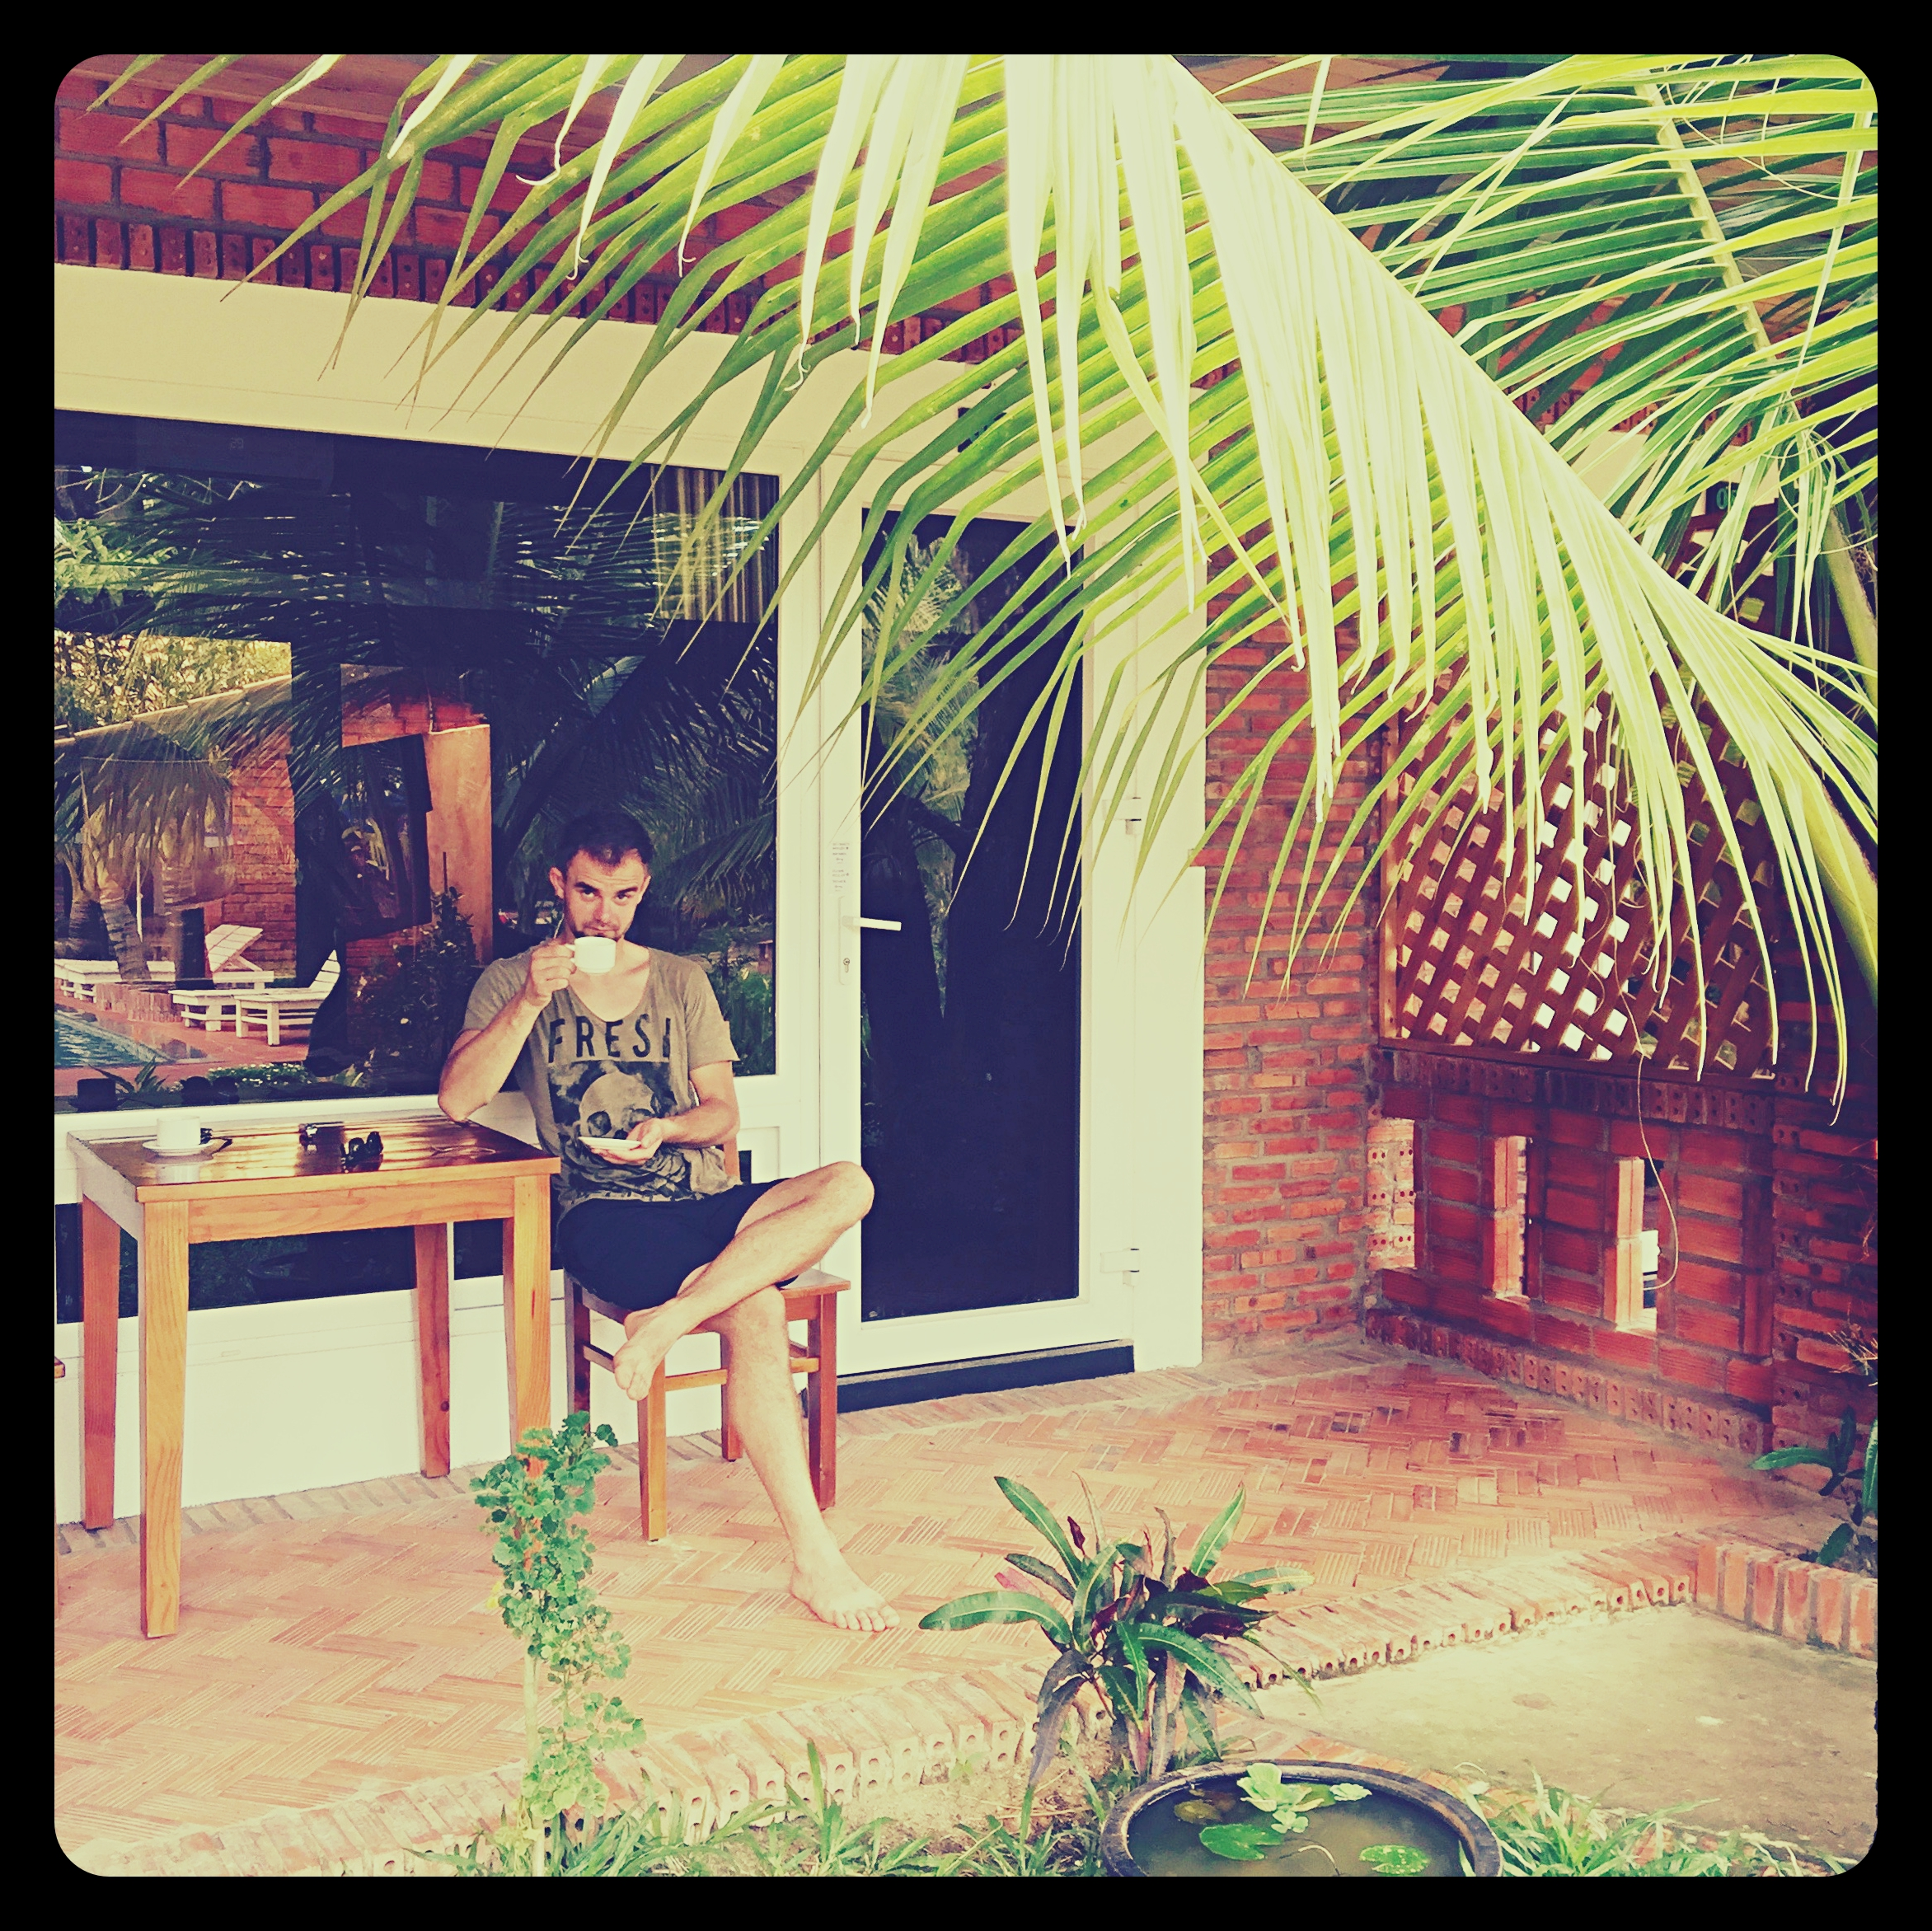 Morning coffee in front of the bungalow